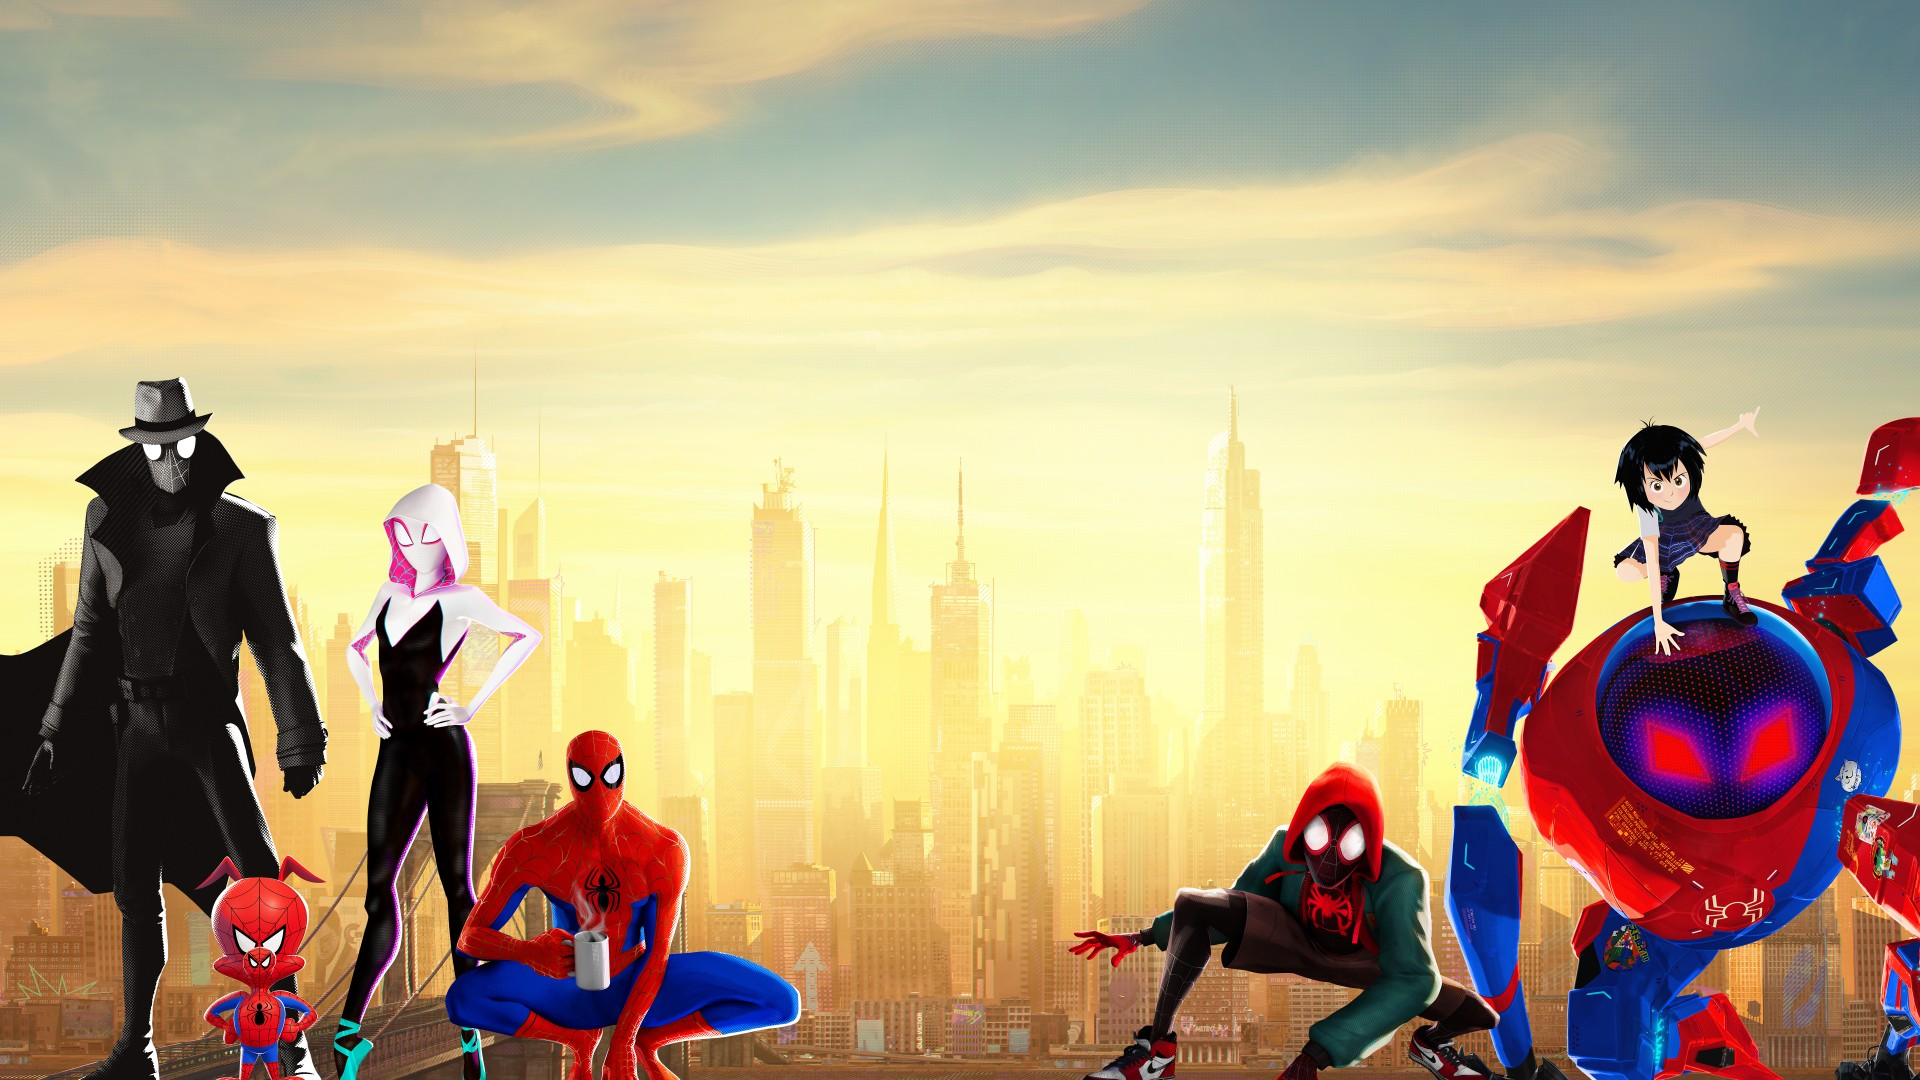 3d Smurfette Wallpapers Spider Man Into The Spider Verse 4k 8k Wallpapers Hd